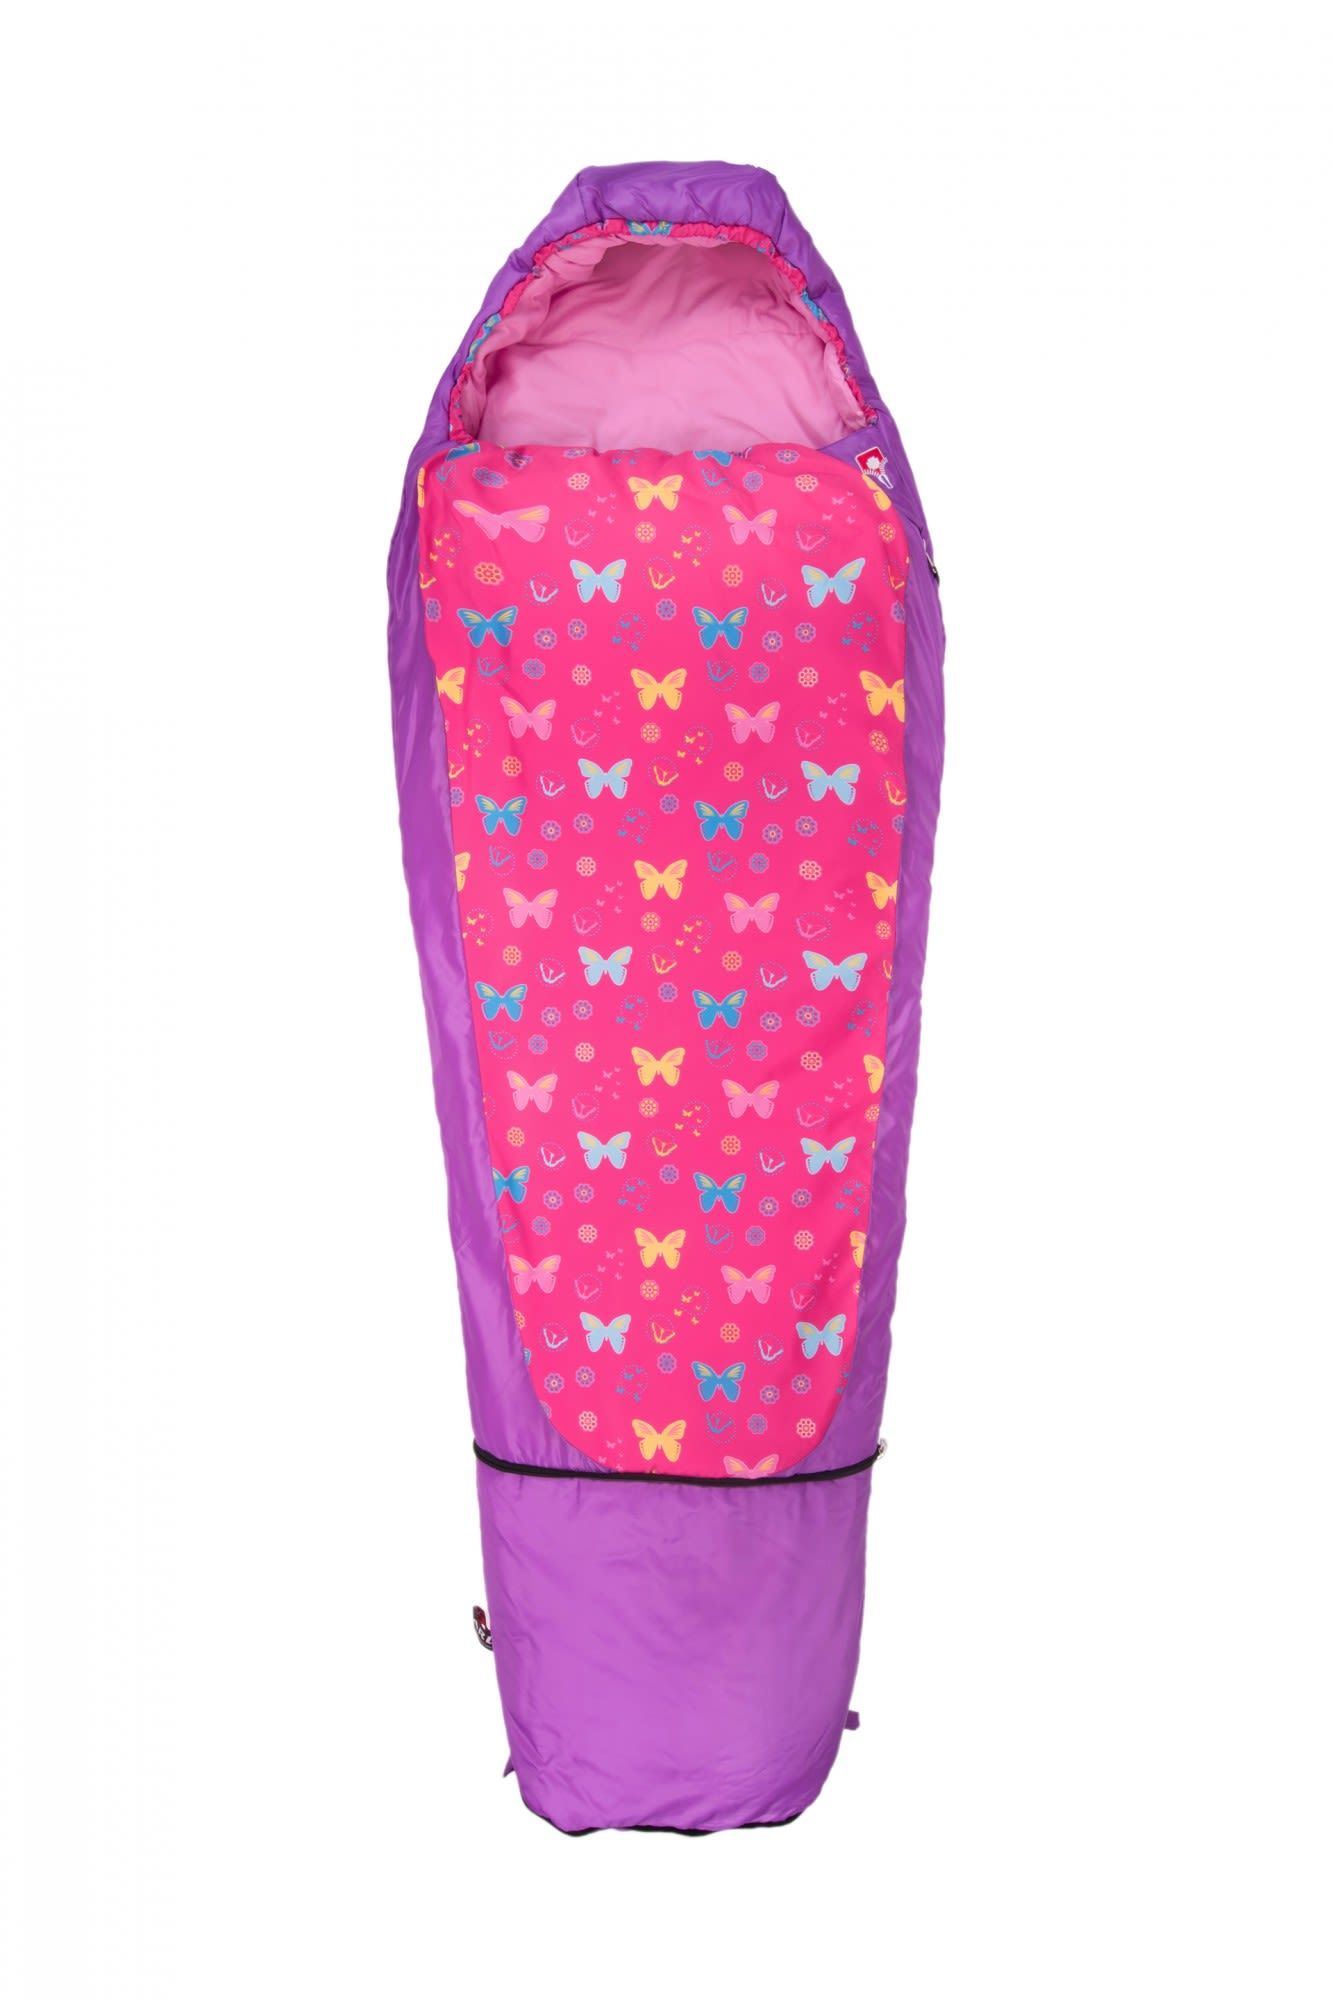 Grüezi Bag Kids Grow Butterfly Lila/Violett, 180 cm RV links -Farbe Purple, 180